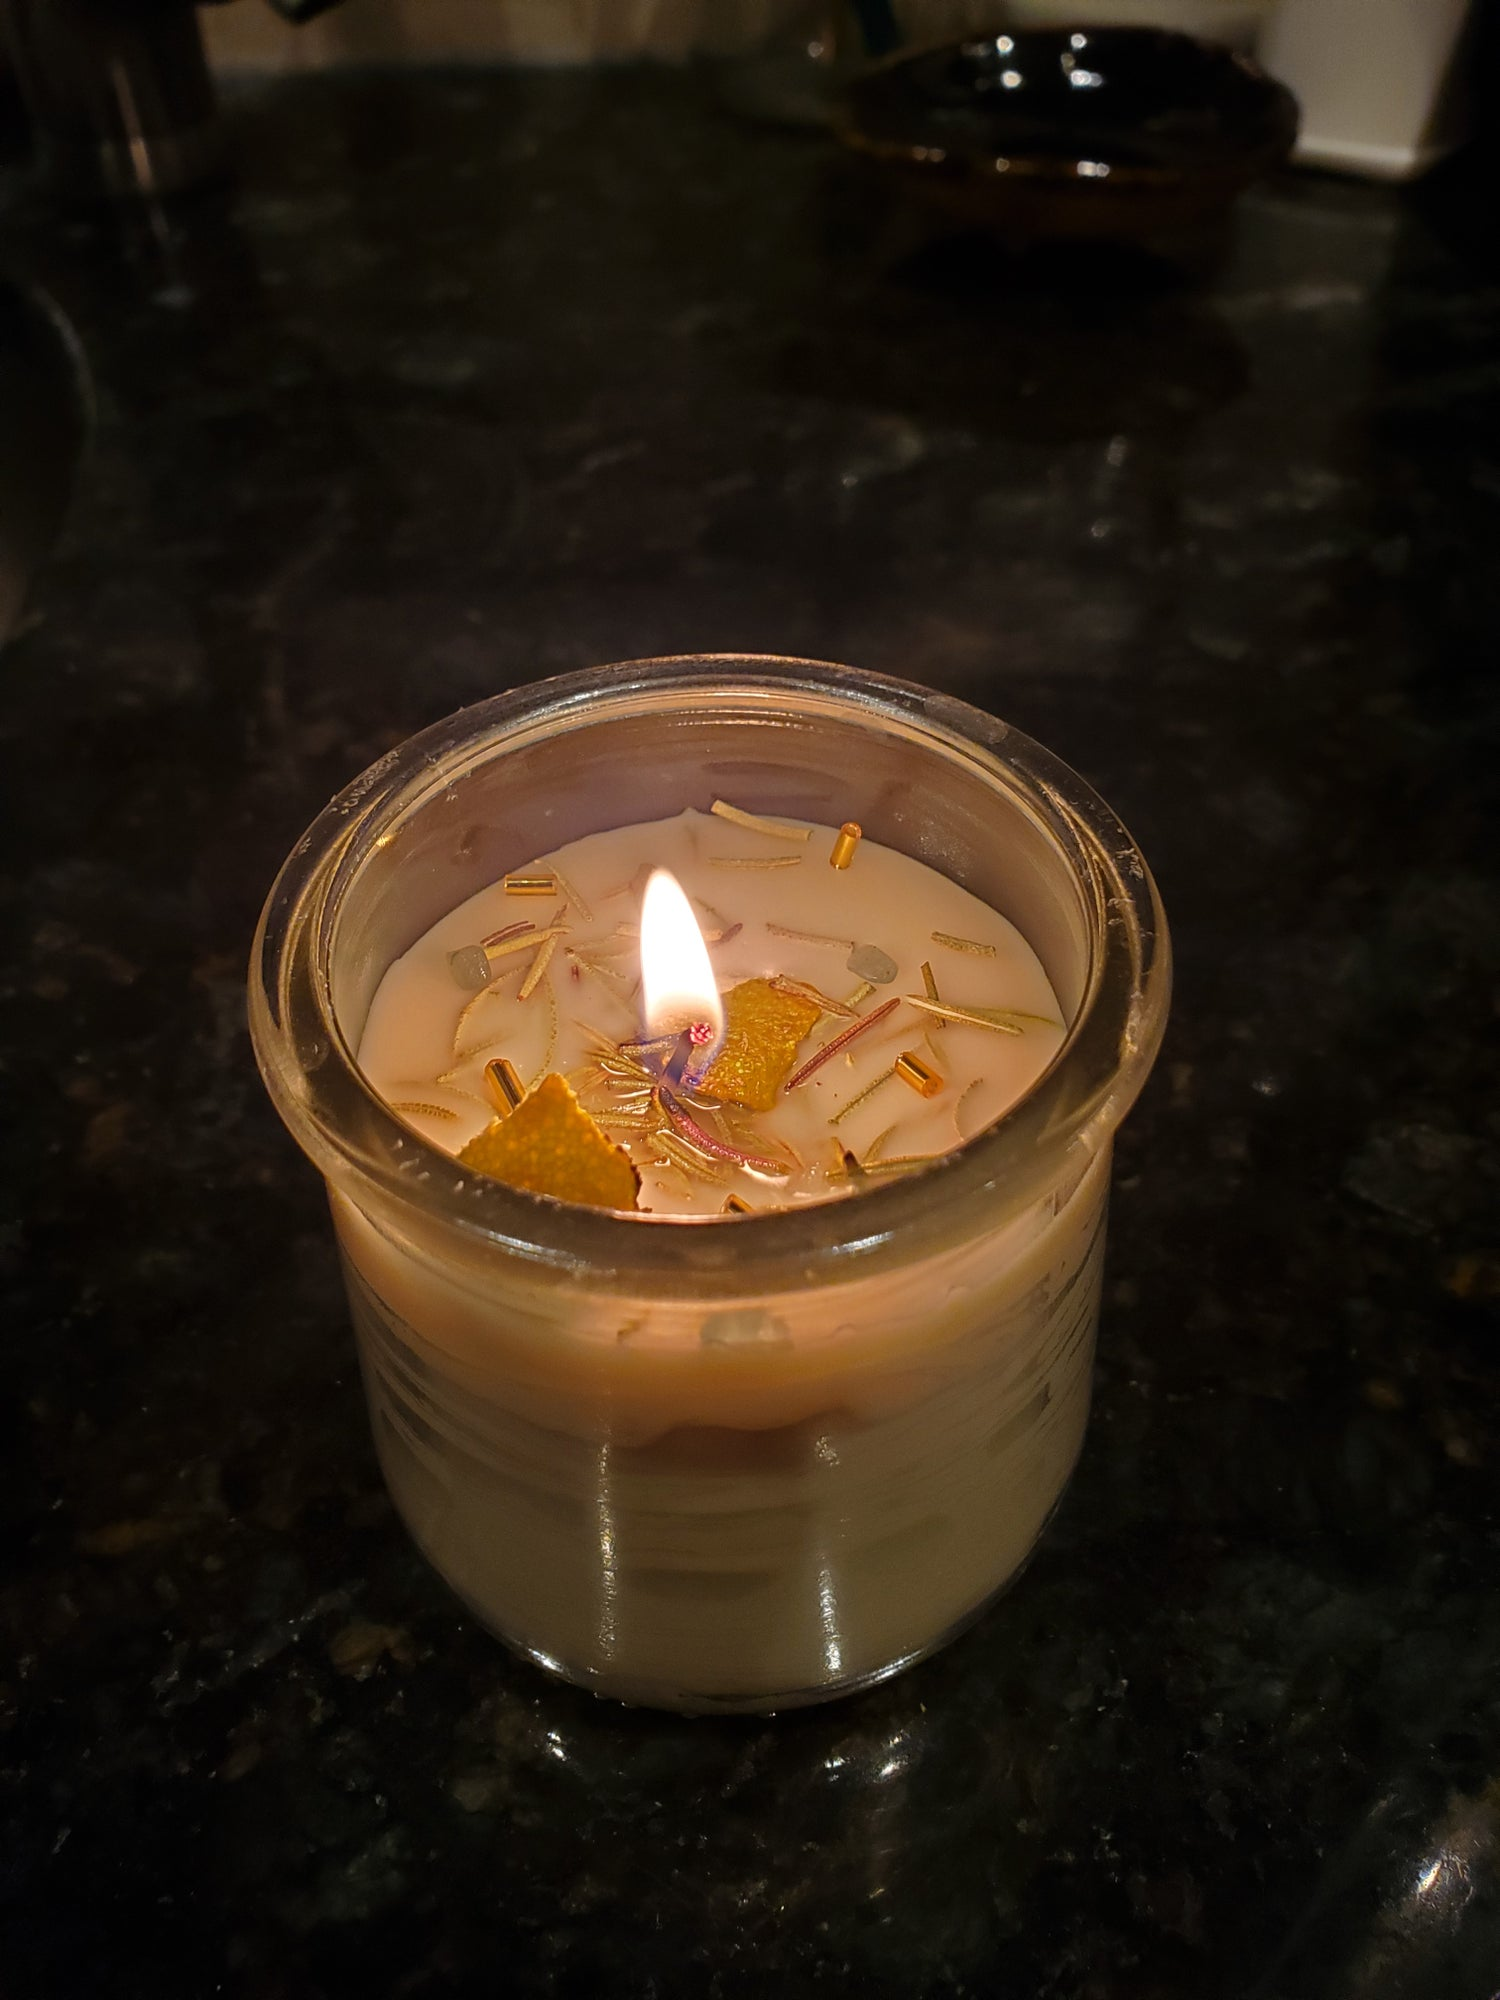 Image of Personal Growth Ritual Candle Eucalyptus Scent